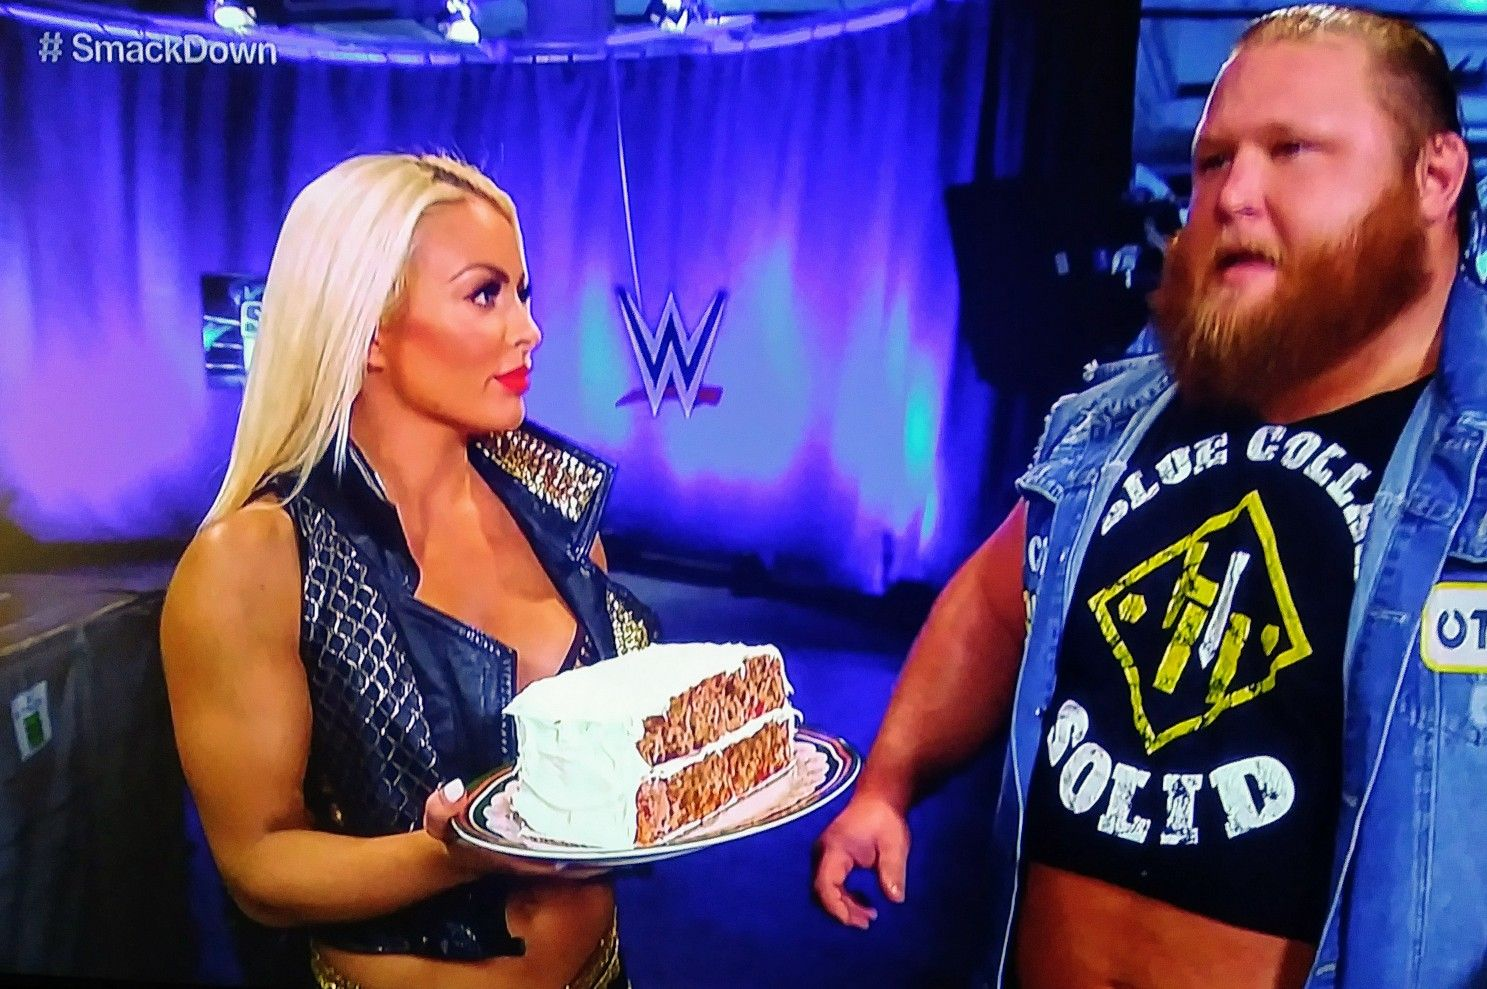 Pin by WWE /MISC on Mandy Rose in 2020 | Concert, Rose, Otis